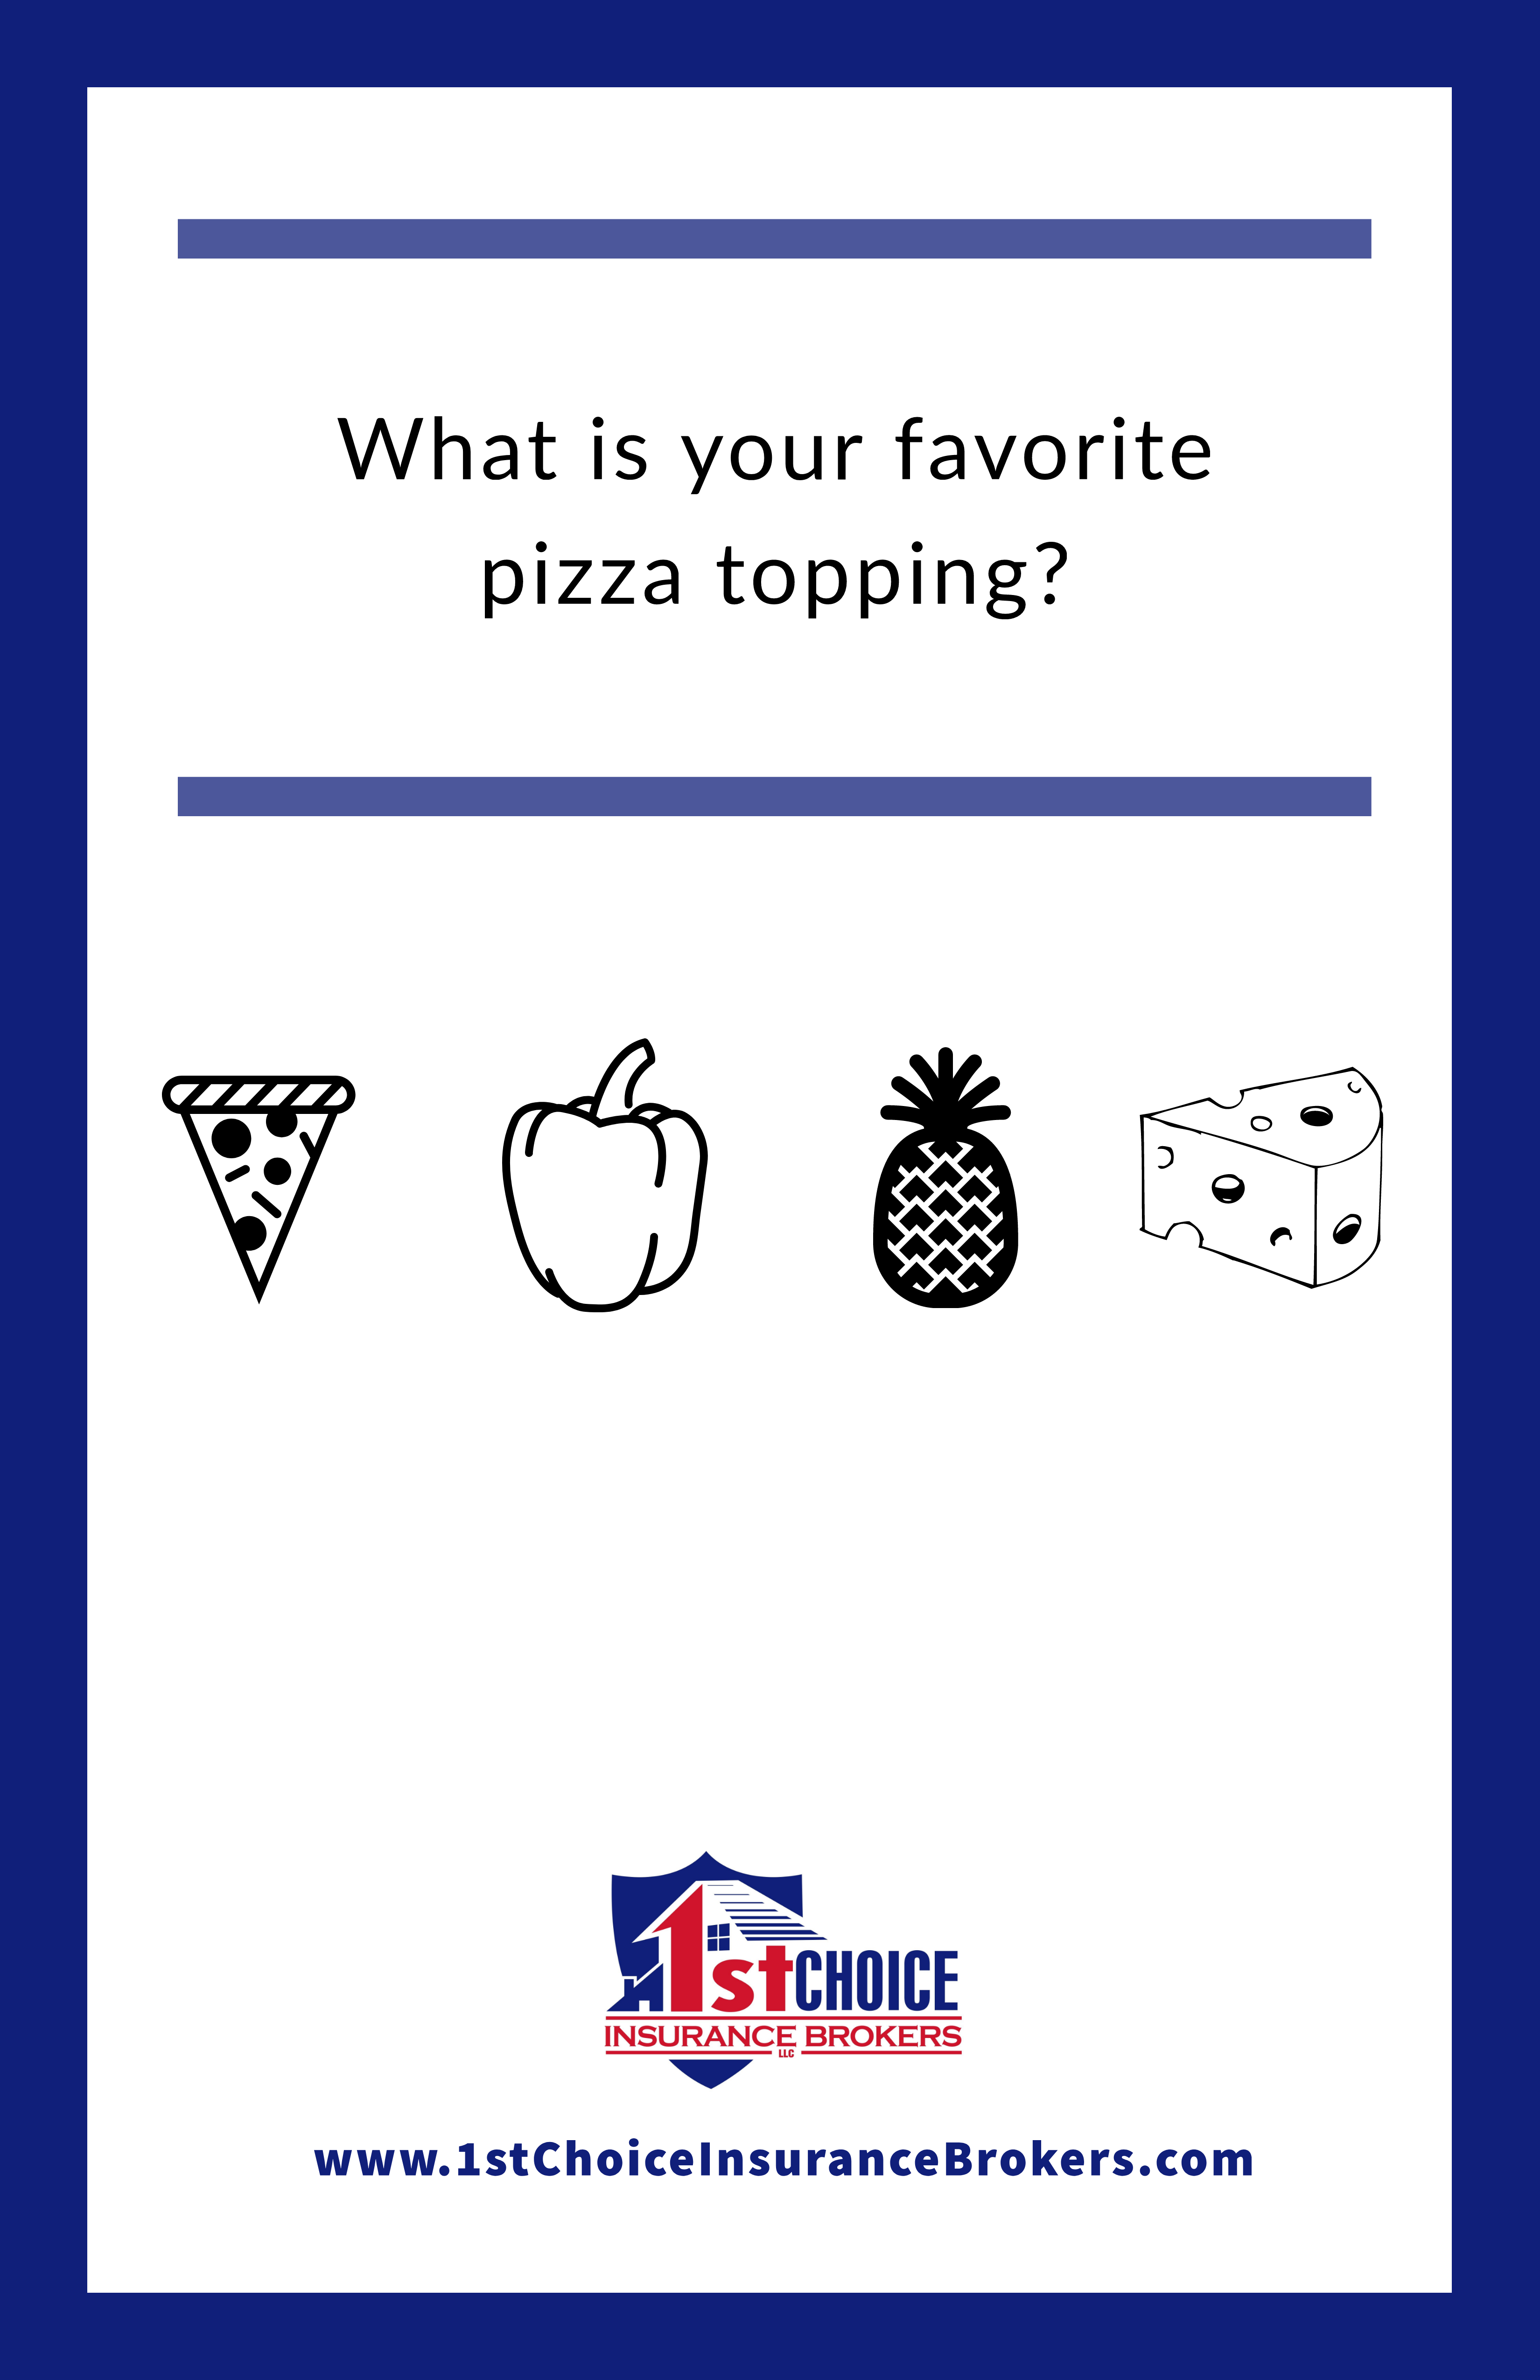 We 1stchoiceinsurancebrokers want to know. Pizza